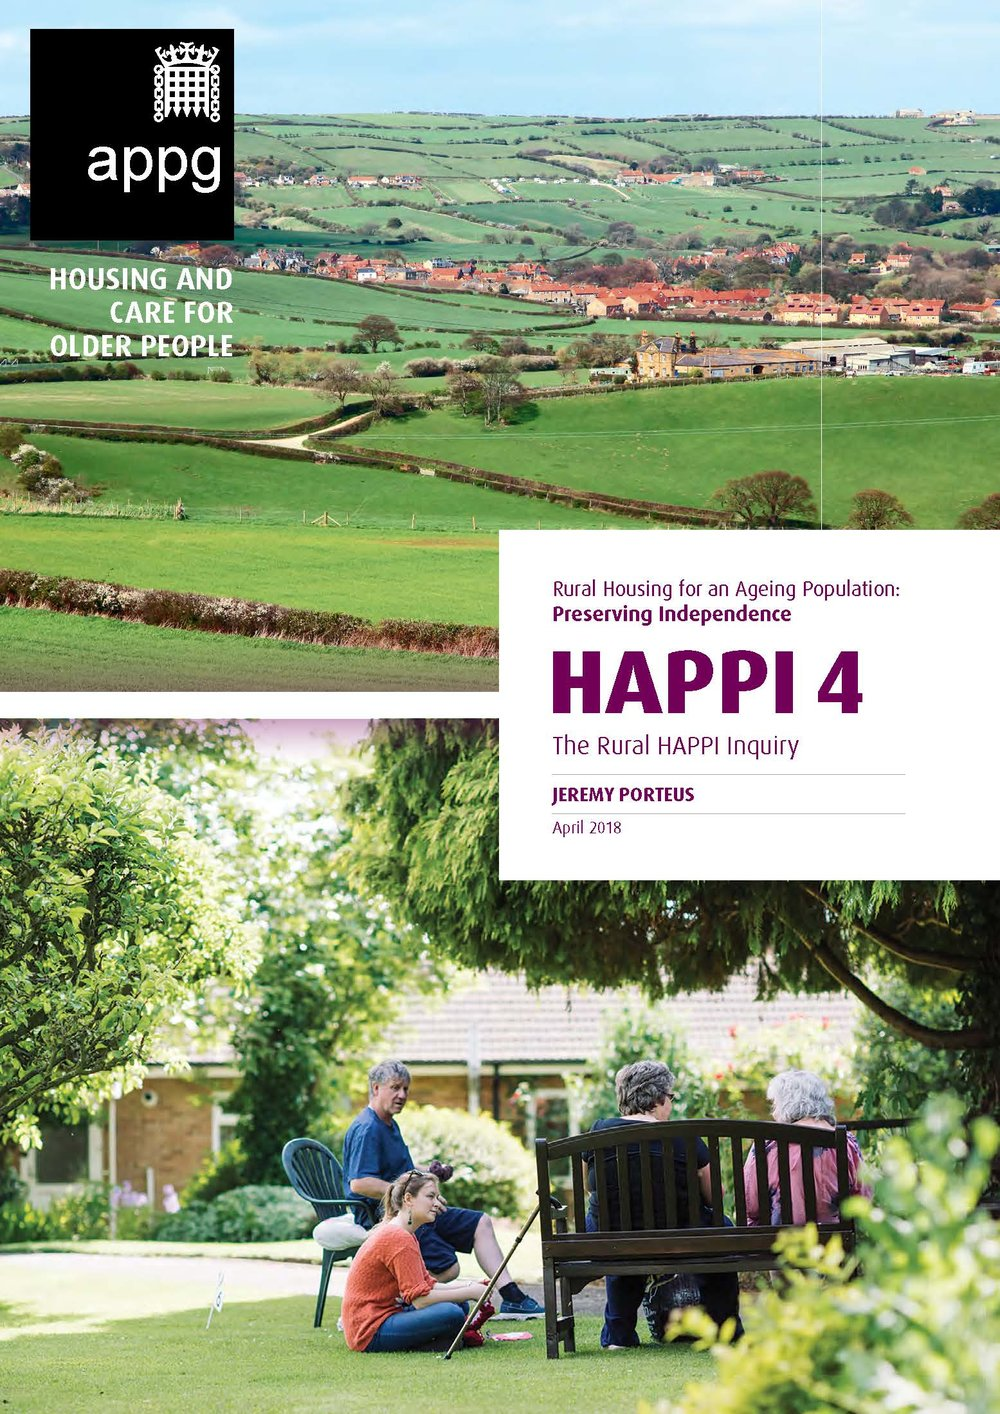 APPG HAPPI 4 Front Cover.jpg